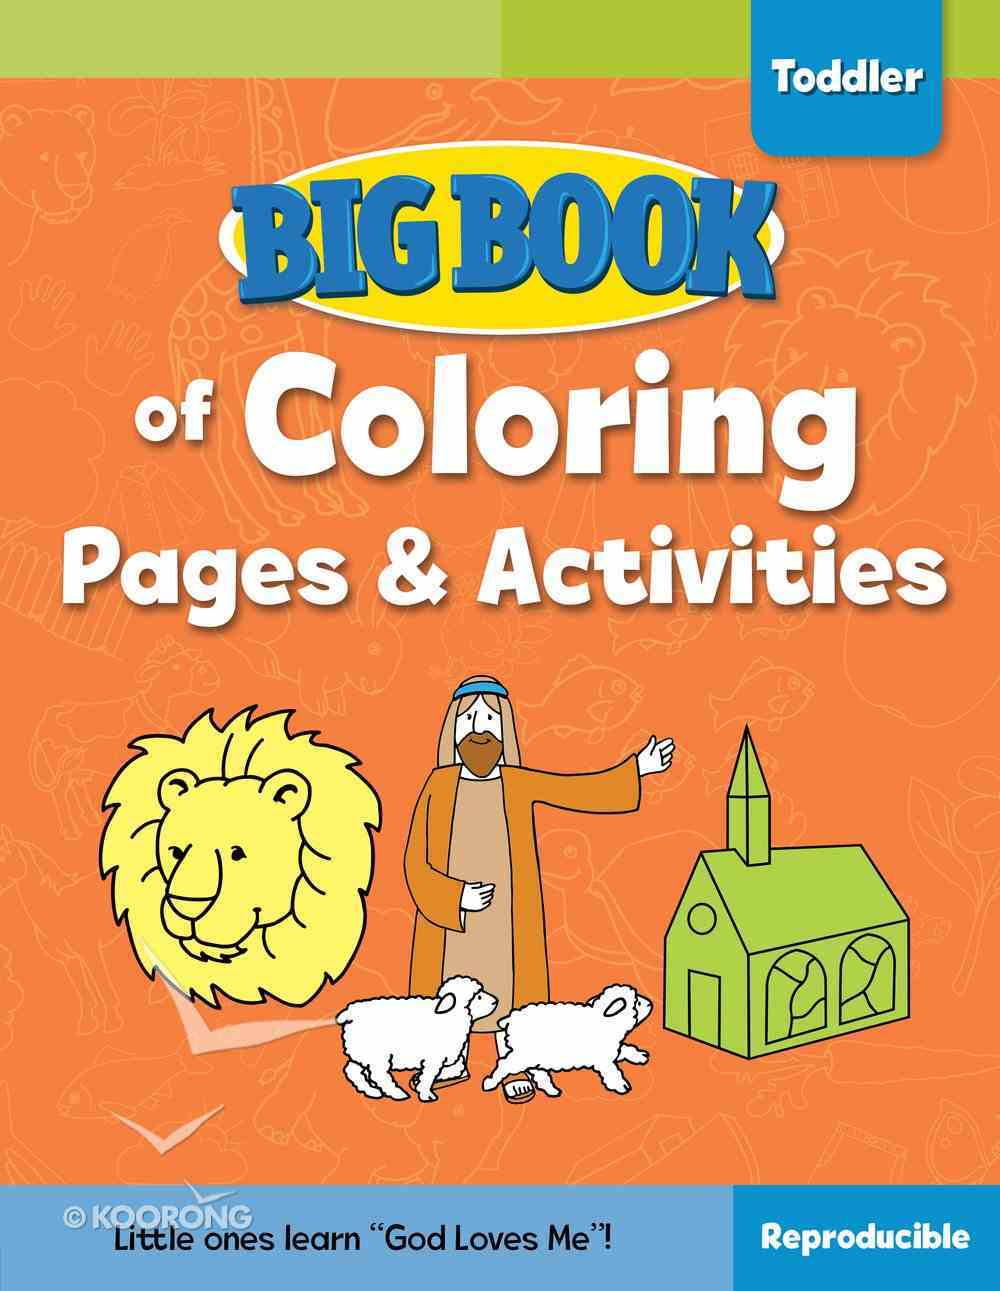 Big Book of Coloring Pages and Activities For Toddlers (Reproducible) Paperback